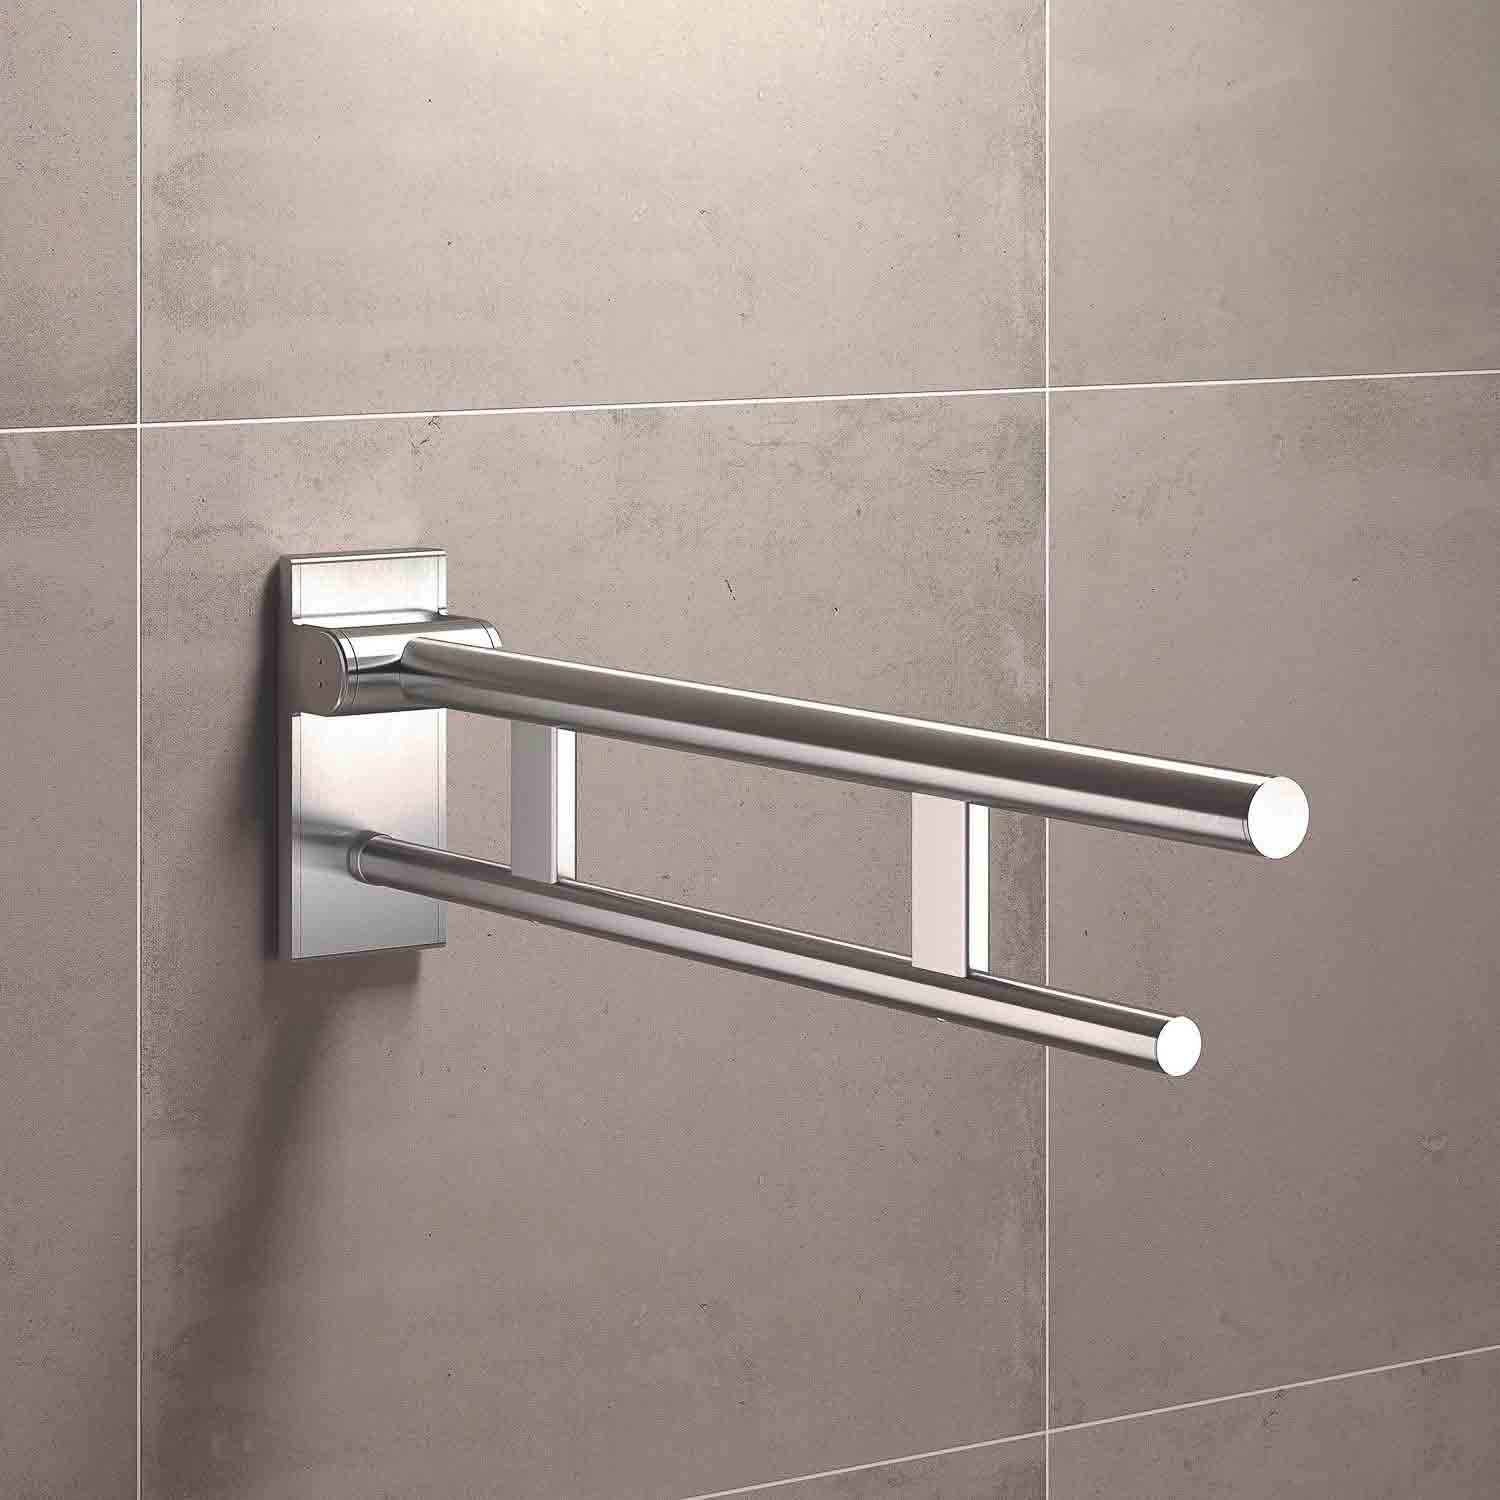 600mm Freestyle Hinged Grab Rail with a satin steel finish lifestyle image